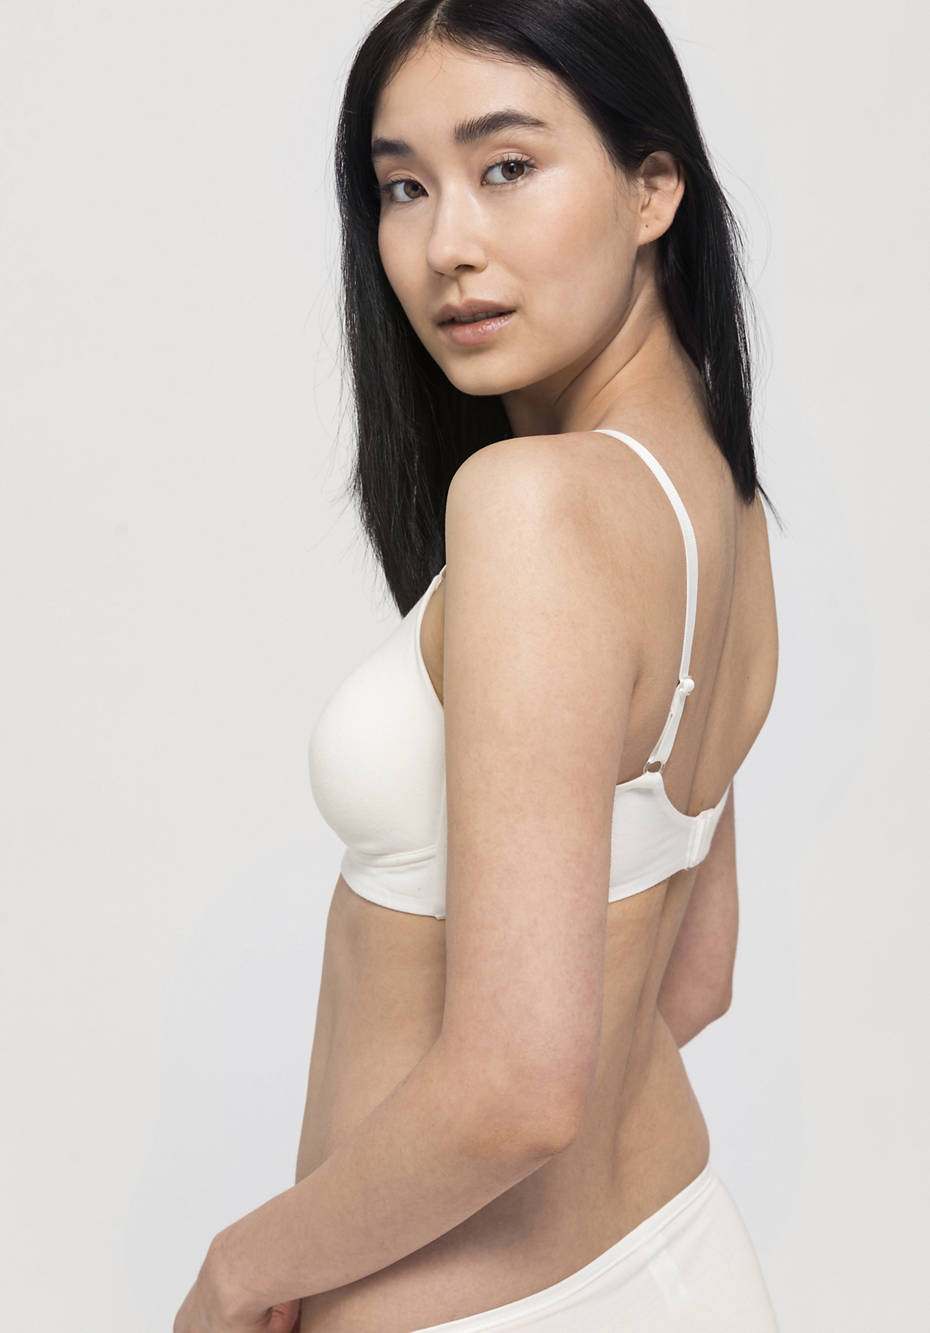 Metal-free spacer bra made of organic cotton and TENCEL ™ Modal